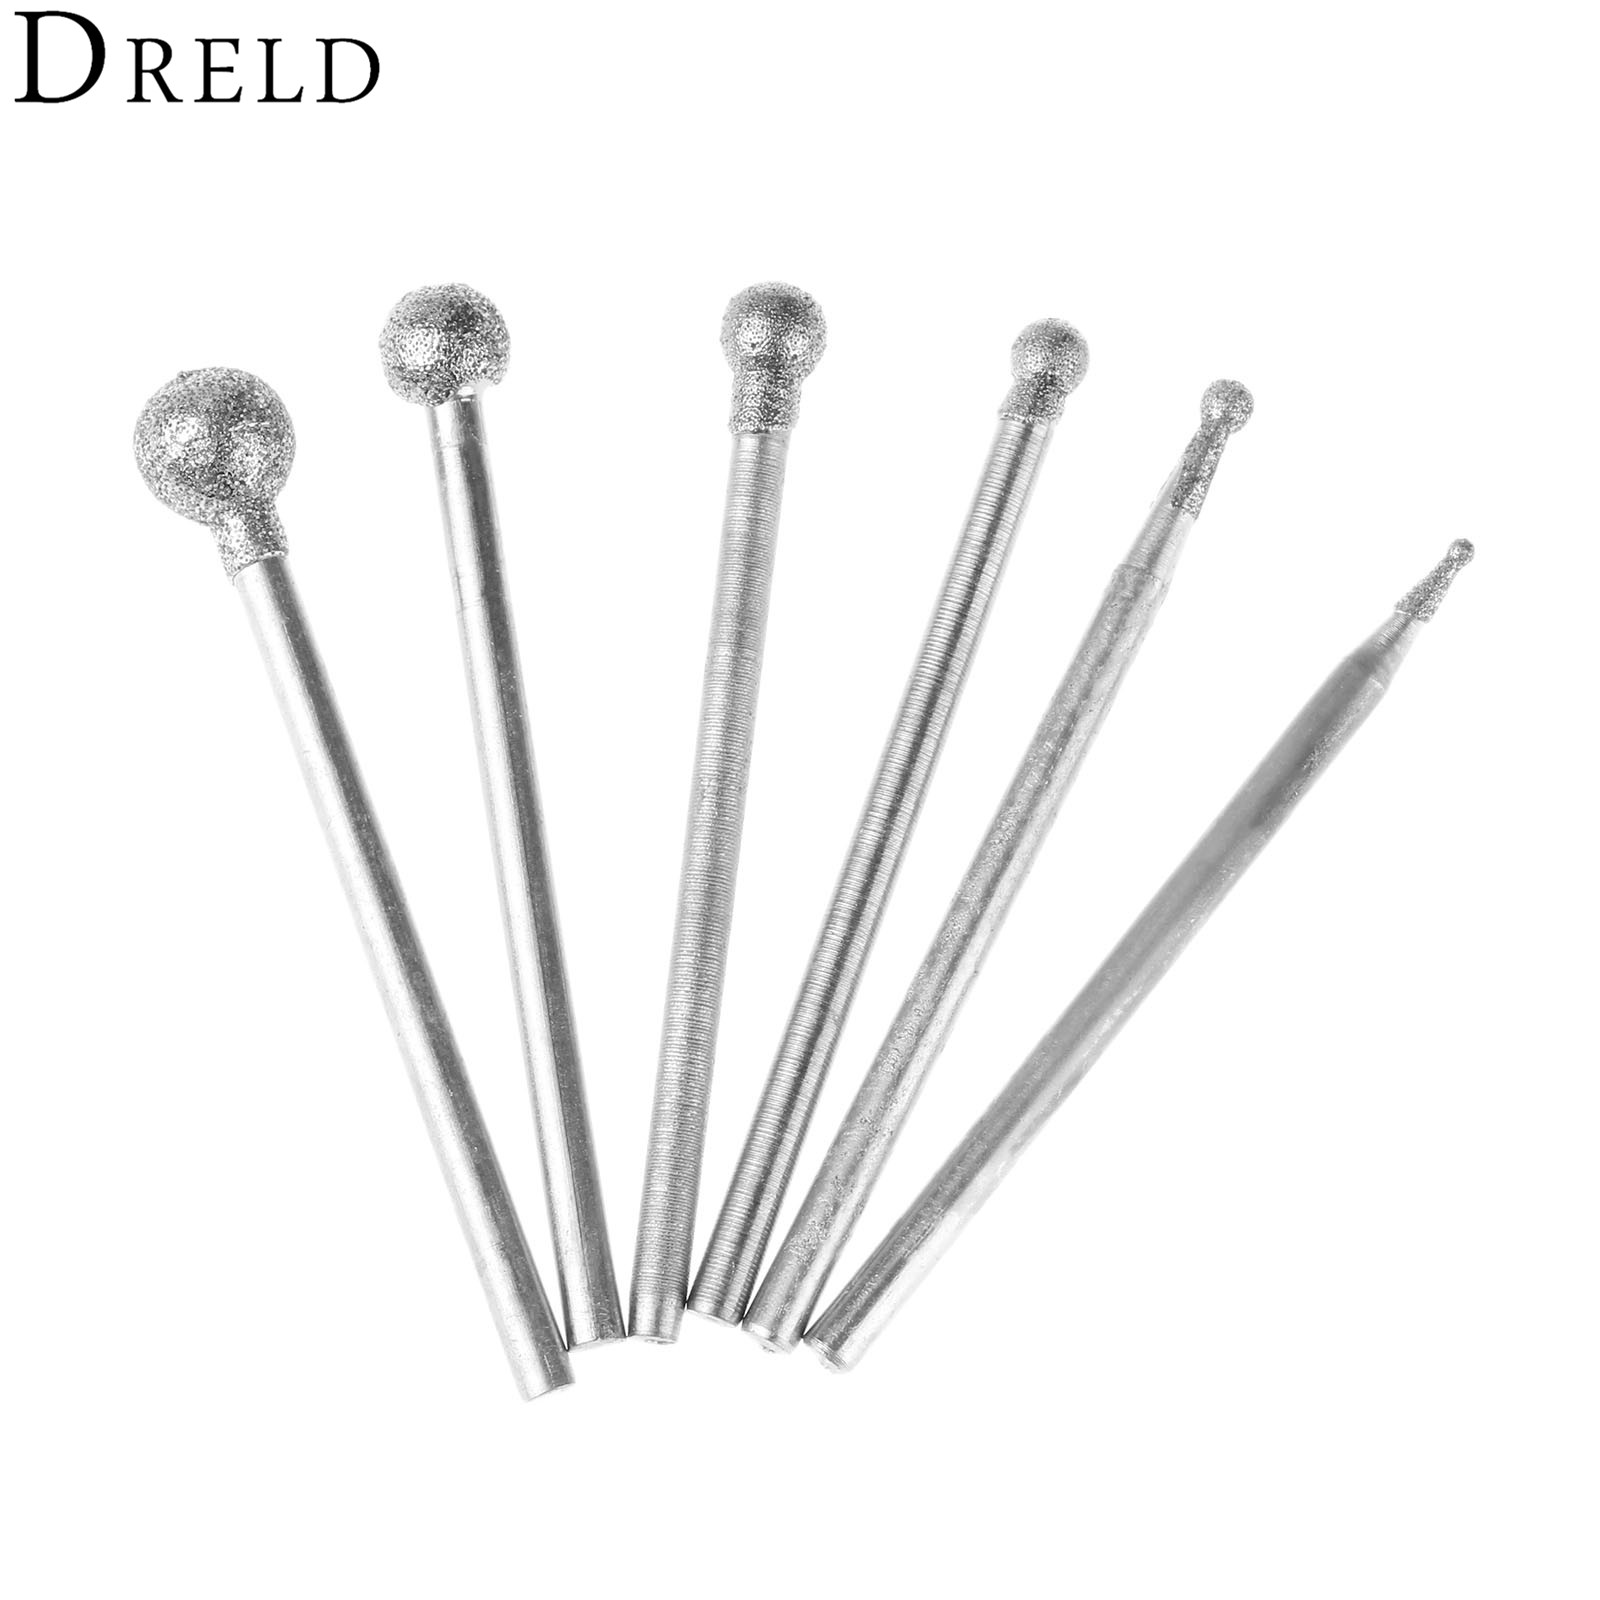 DRELD 6Pcs 2.35mm Shank Diamond Spherical Polishing Grinding Head Mounted Points Grinding Bit For Dremel Rotary Tools F Needle